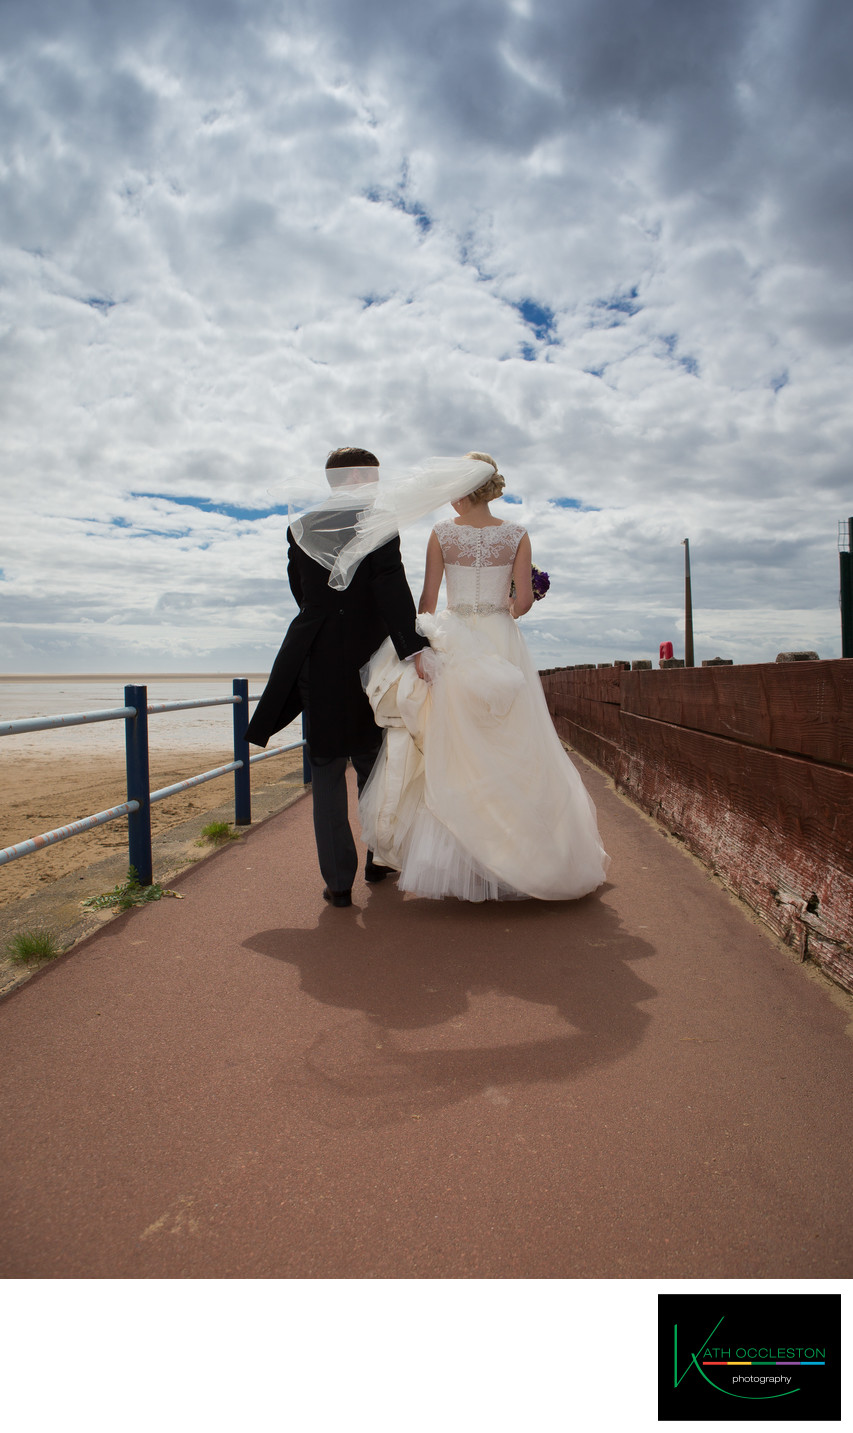 Windy wedding day photography in St Annes on Sea